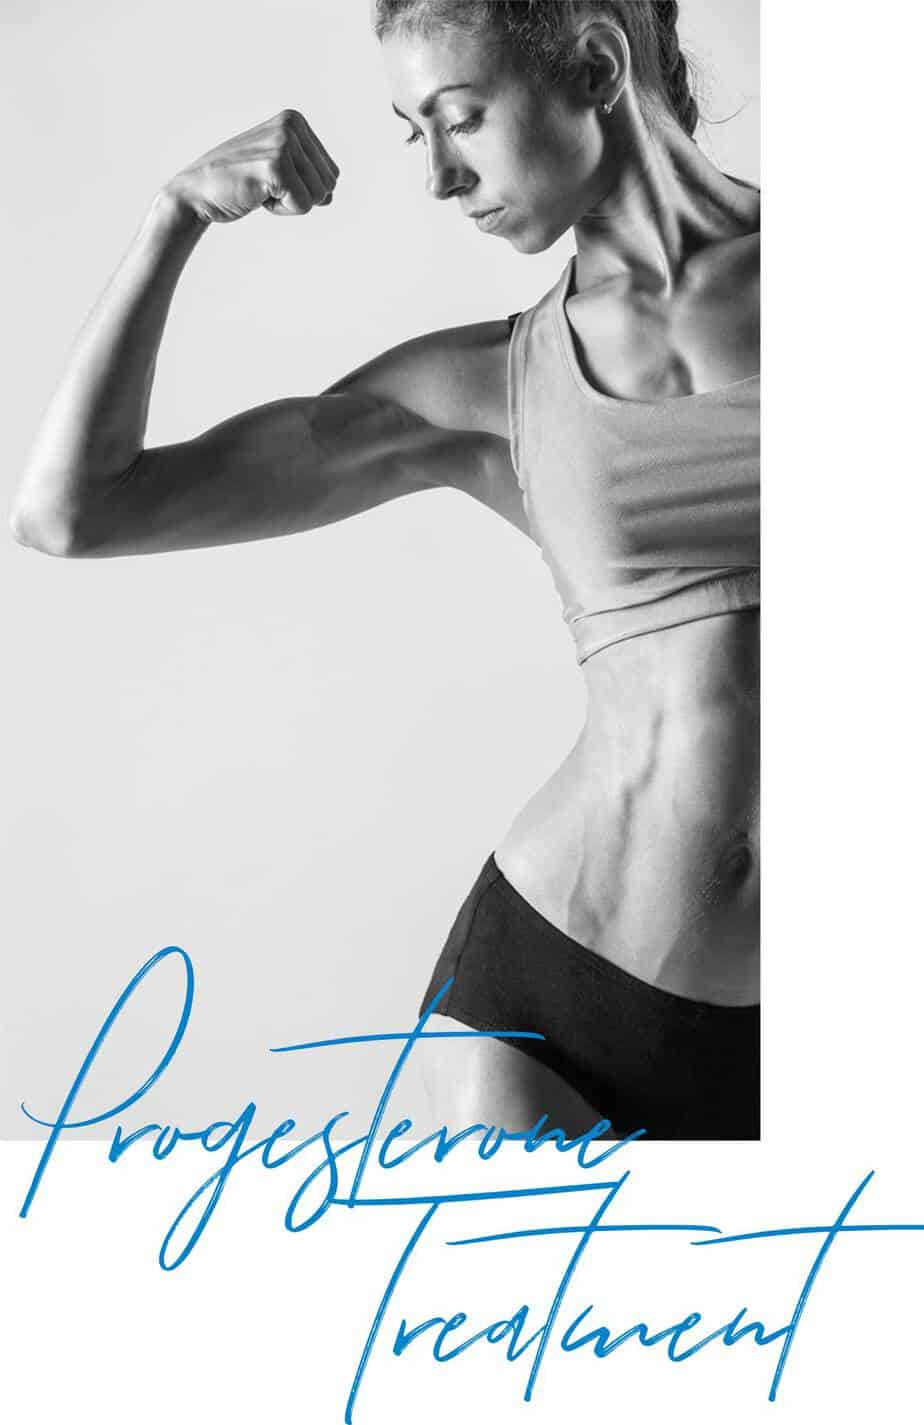 progesterone treatment for women